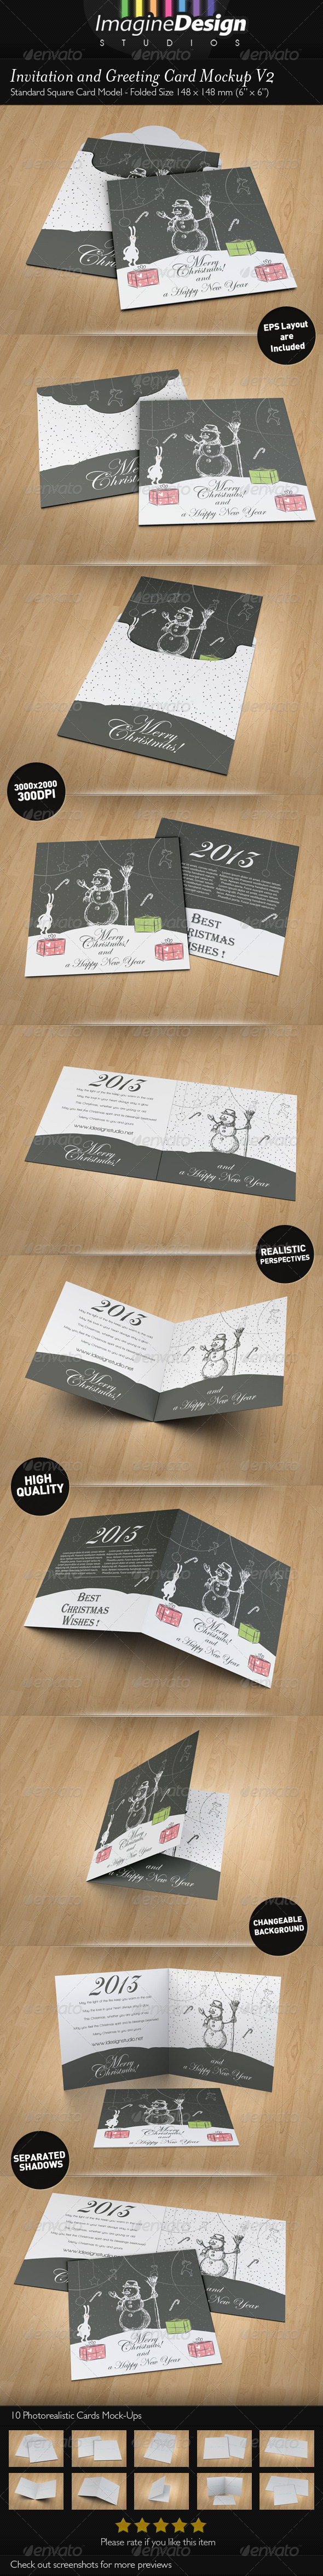 Invitation and Greeting Card Mockup V2 - Miscellaneous Print